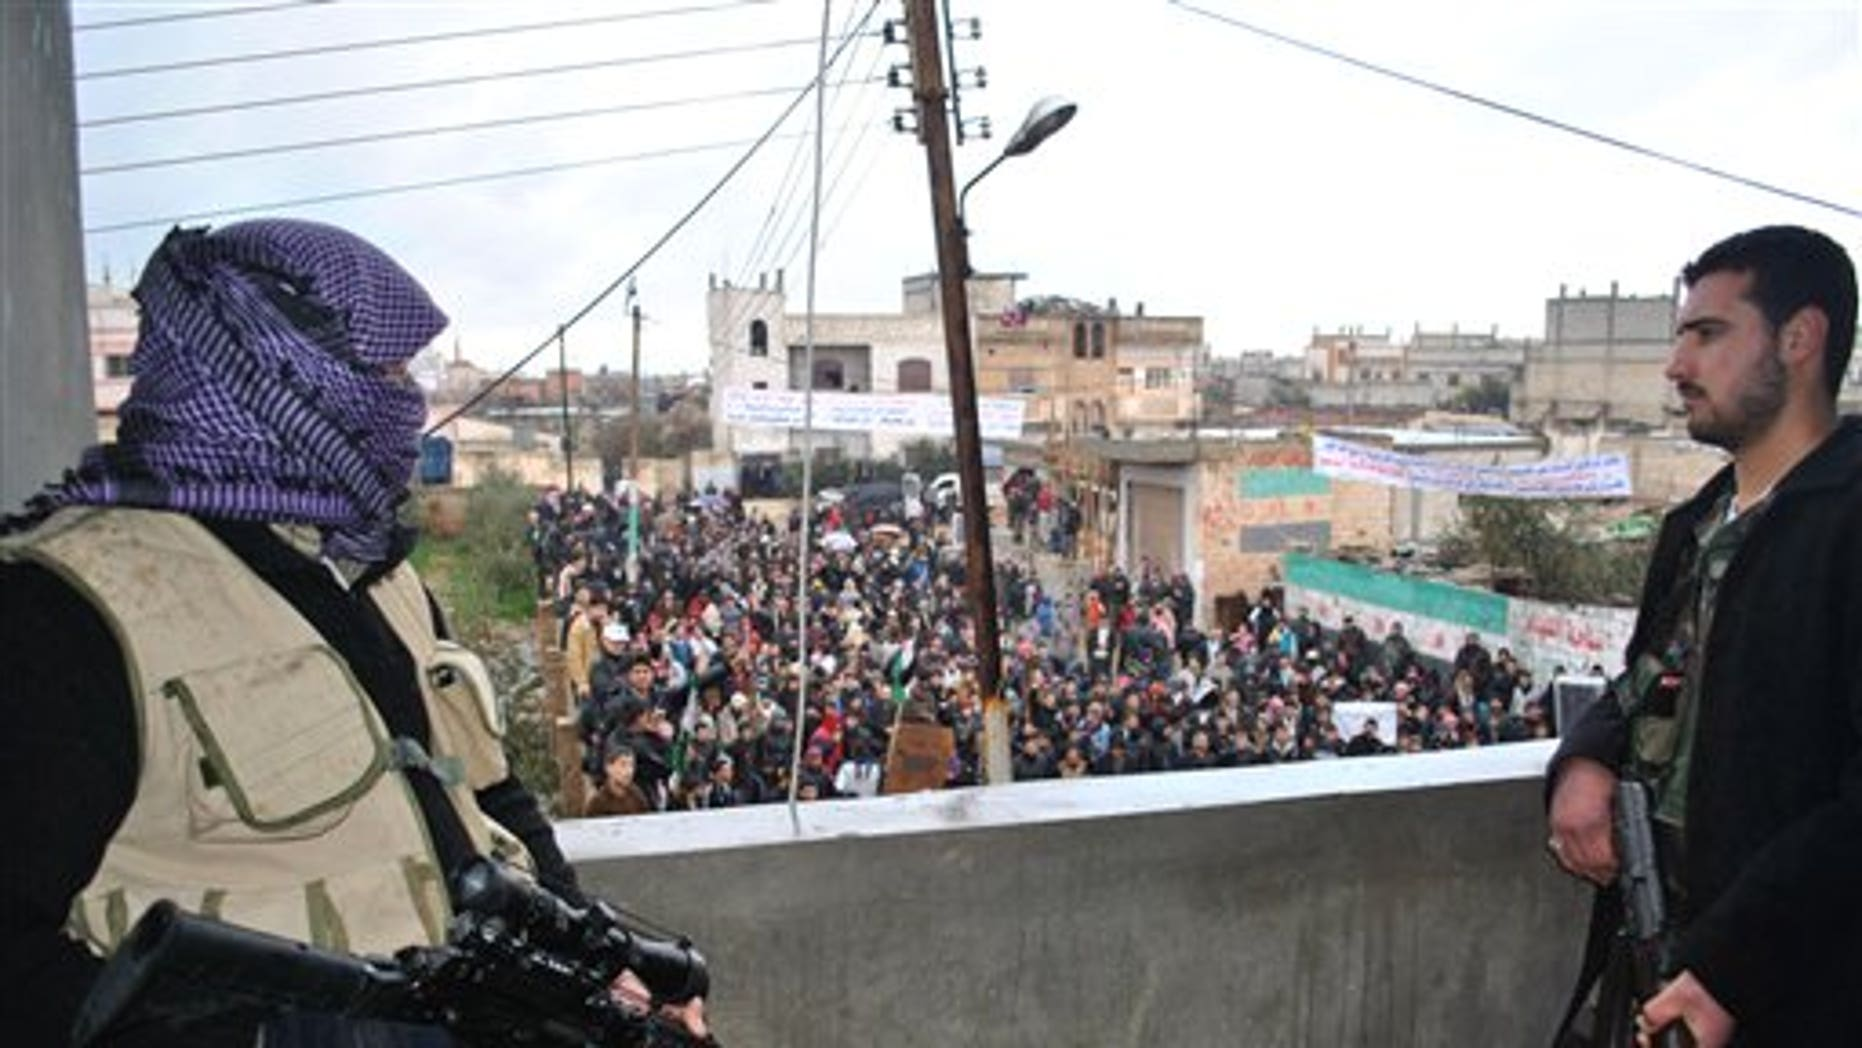 Jan. 27, 2012: Syrian army defectors stand guard on a rooftop to secure an anti-Syrian regime protest in the Deir Baghlaba area in Homs province, central Syria. Armed forces loyal to President Bashar Assad barraged residential buildings with mortars and machine-gun fire, killing at least 30 people, including a family of women and children during a day of sectarian killings and kidnappings in the besieged Syrian city of Homs, activists said Friday.